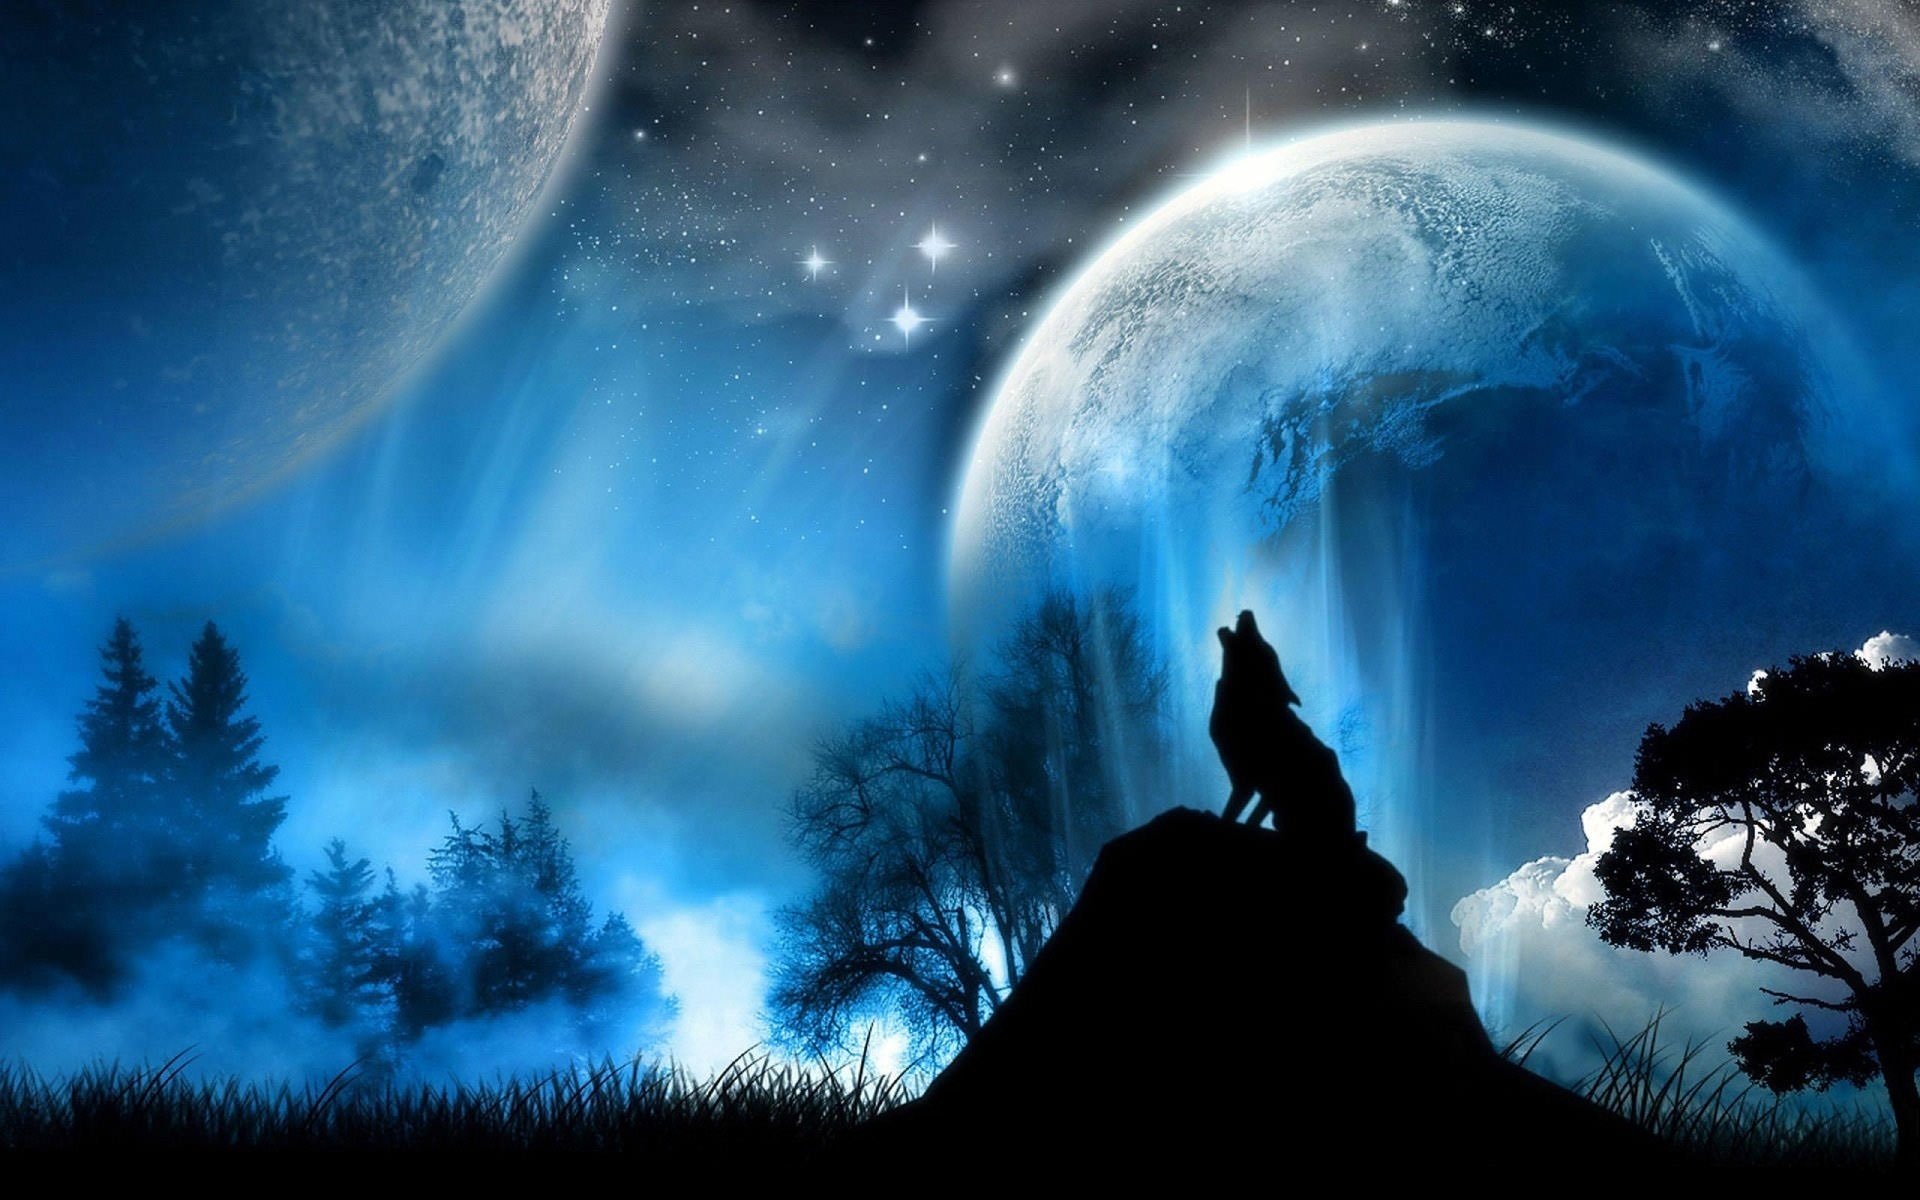 Best Wall Papers 20 best moon desktop wallpapers|freecreatives